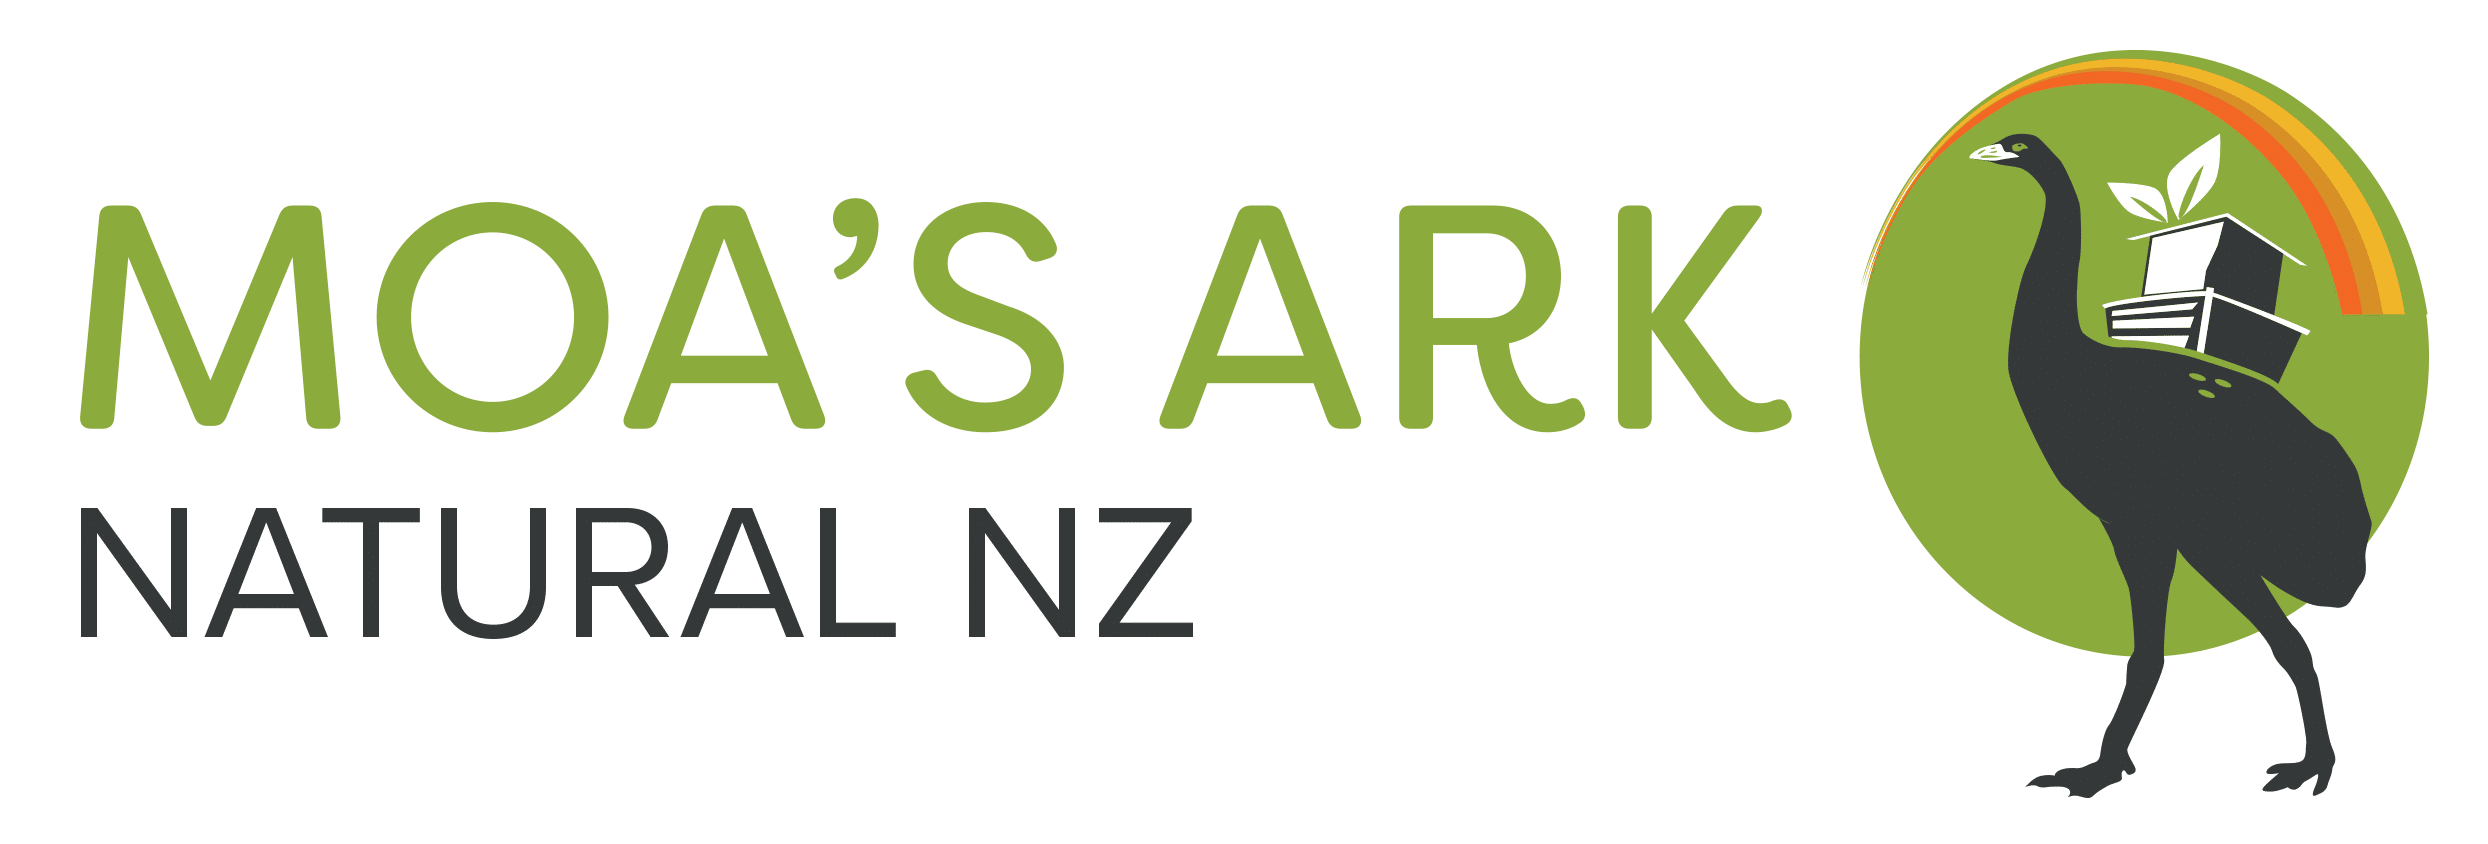 Moas Ark Natural NZ